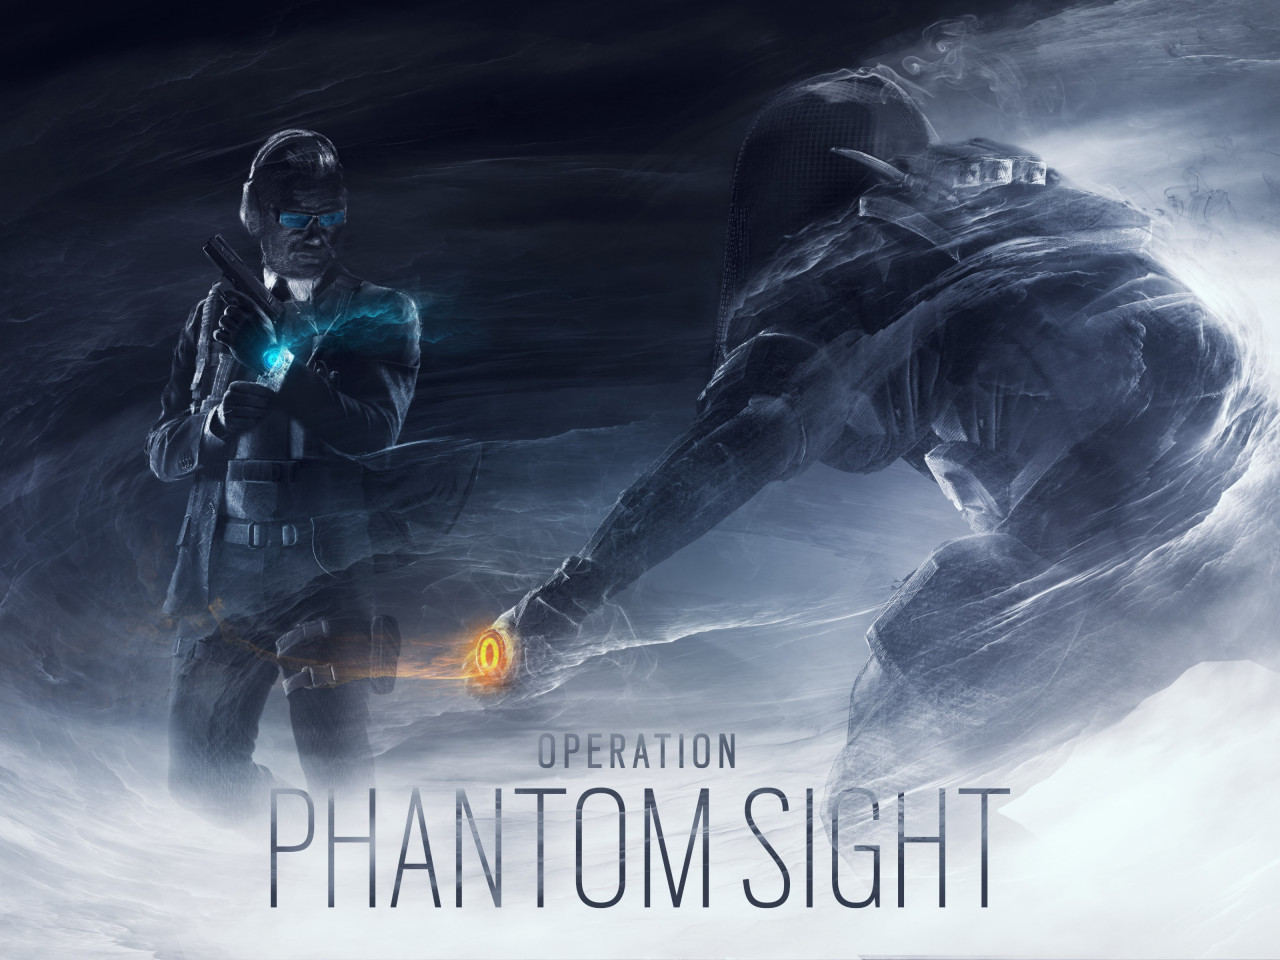 Rainbow Six Siege Operation Phantom Sight | 1280x960 wallpaper